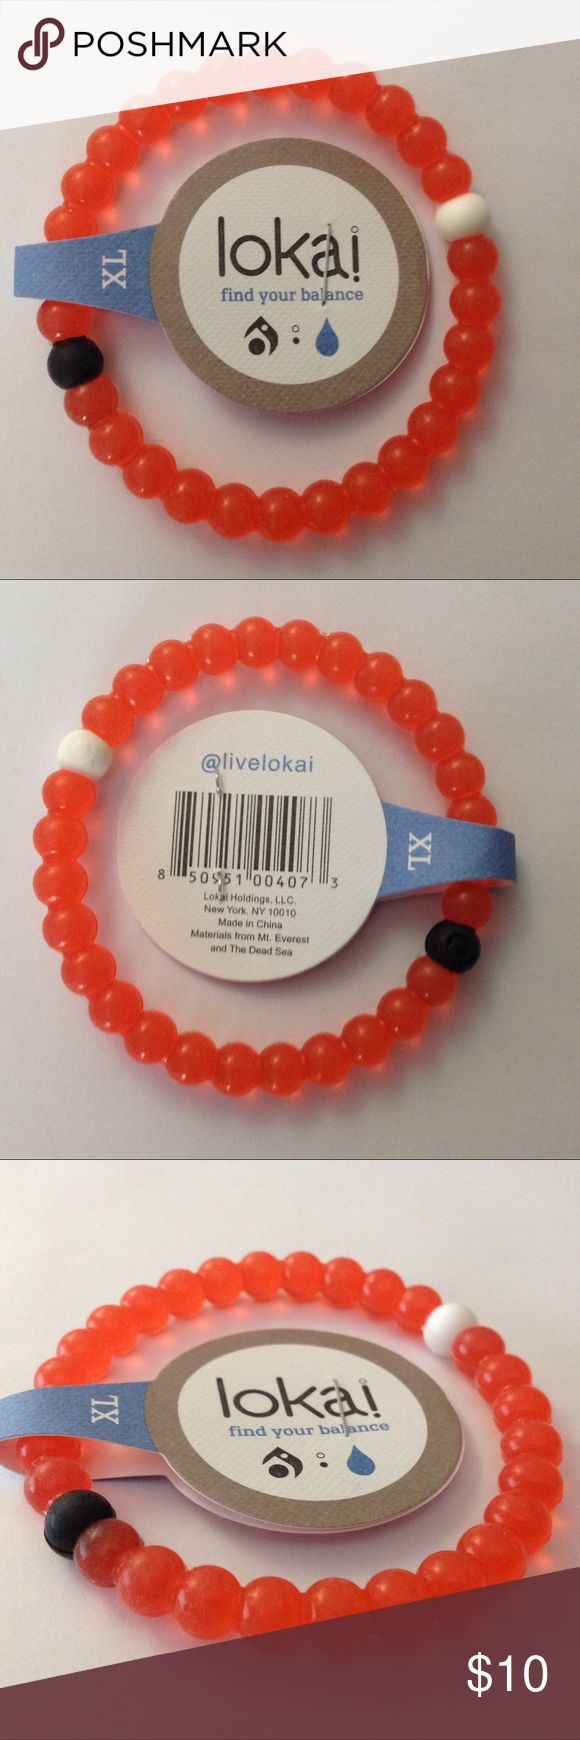 Lokai orange bracelet promotes strength & clarity Beautiful orange Lokai bracelet for clarity, balance, and inner peace, promotes a calming presence. Contains minerals from the Dead Sea.  Promotes Strength with beauty, size XL - measures 3 inches wide Lokai Jewelry Bracelets